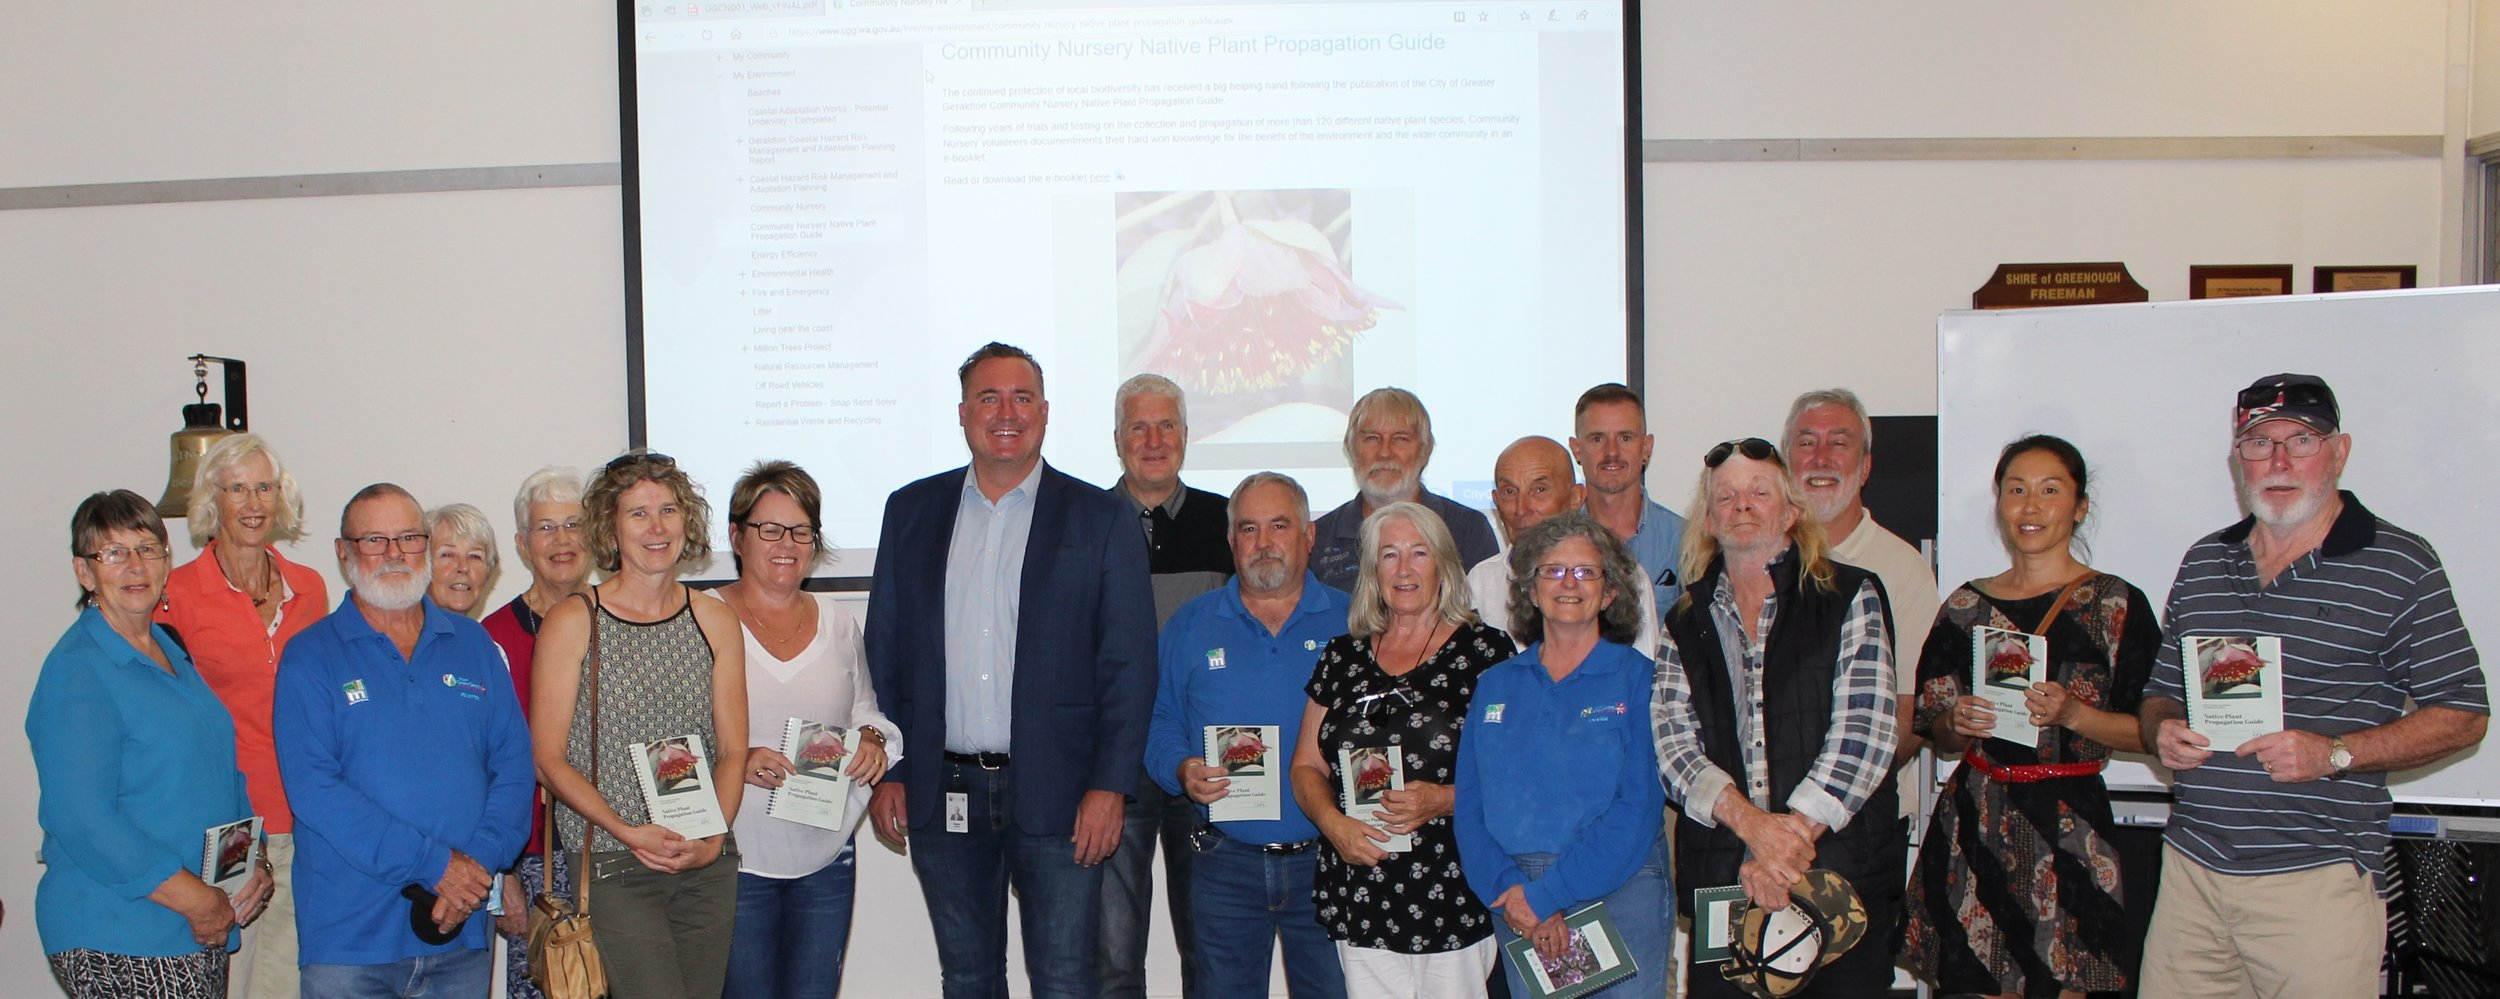 City of Greater Geraldton Mayor Shane Van Styn (middle) joins Geraldton Community Nursery volunteers to celebrate the launch of their Native Plant Propagation Guide e-booklet, available free on the City website.